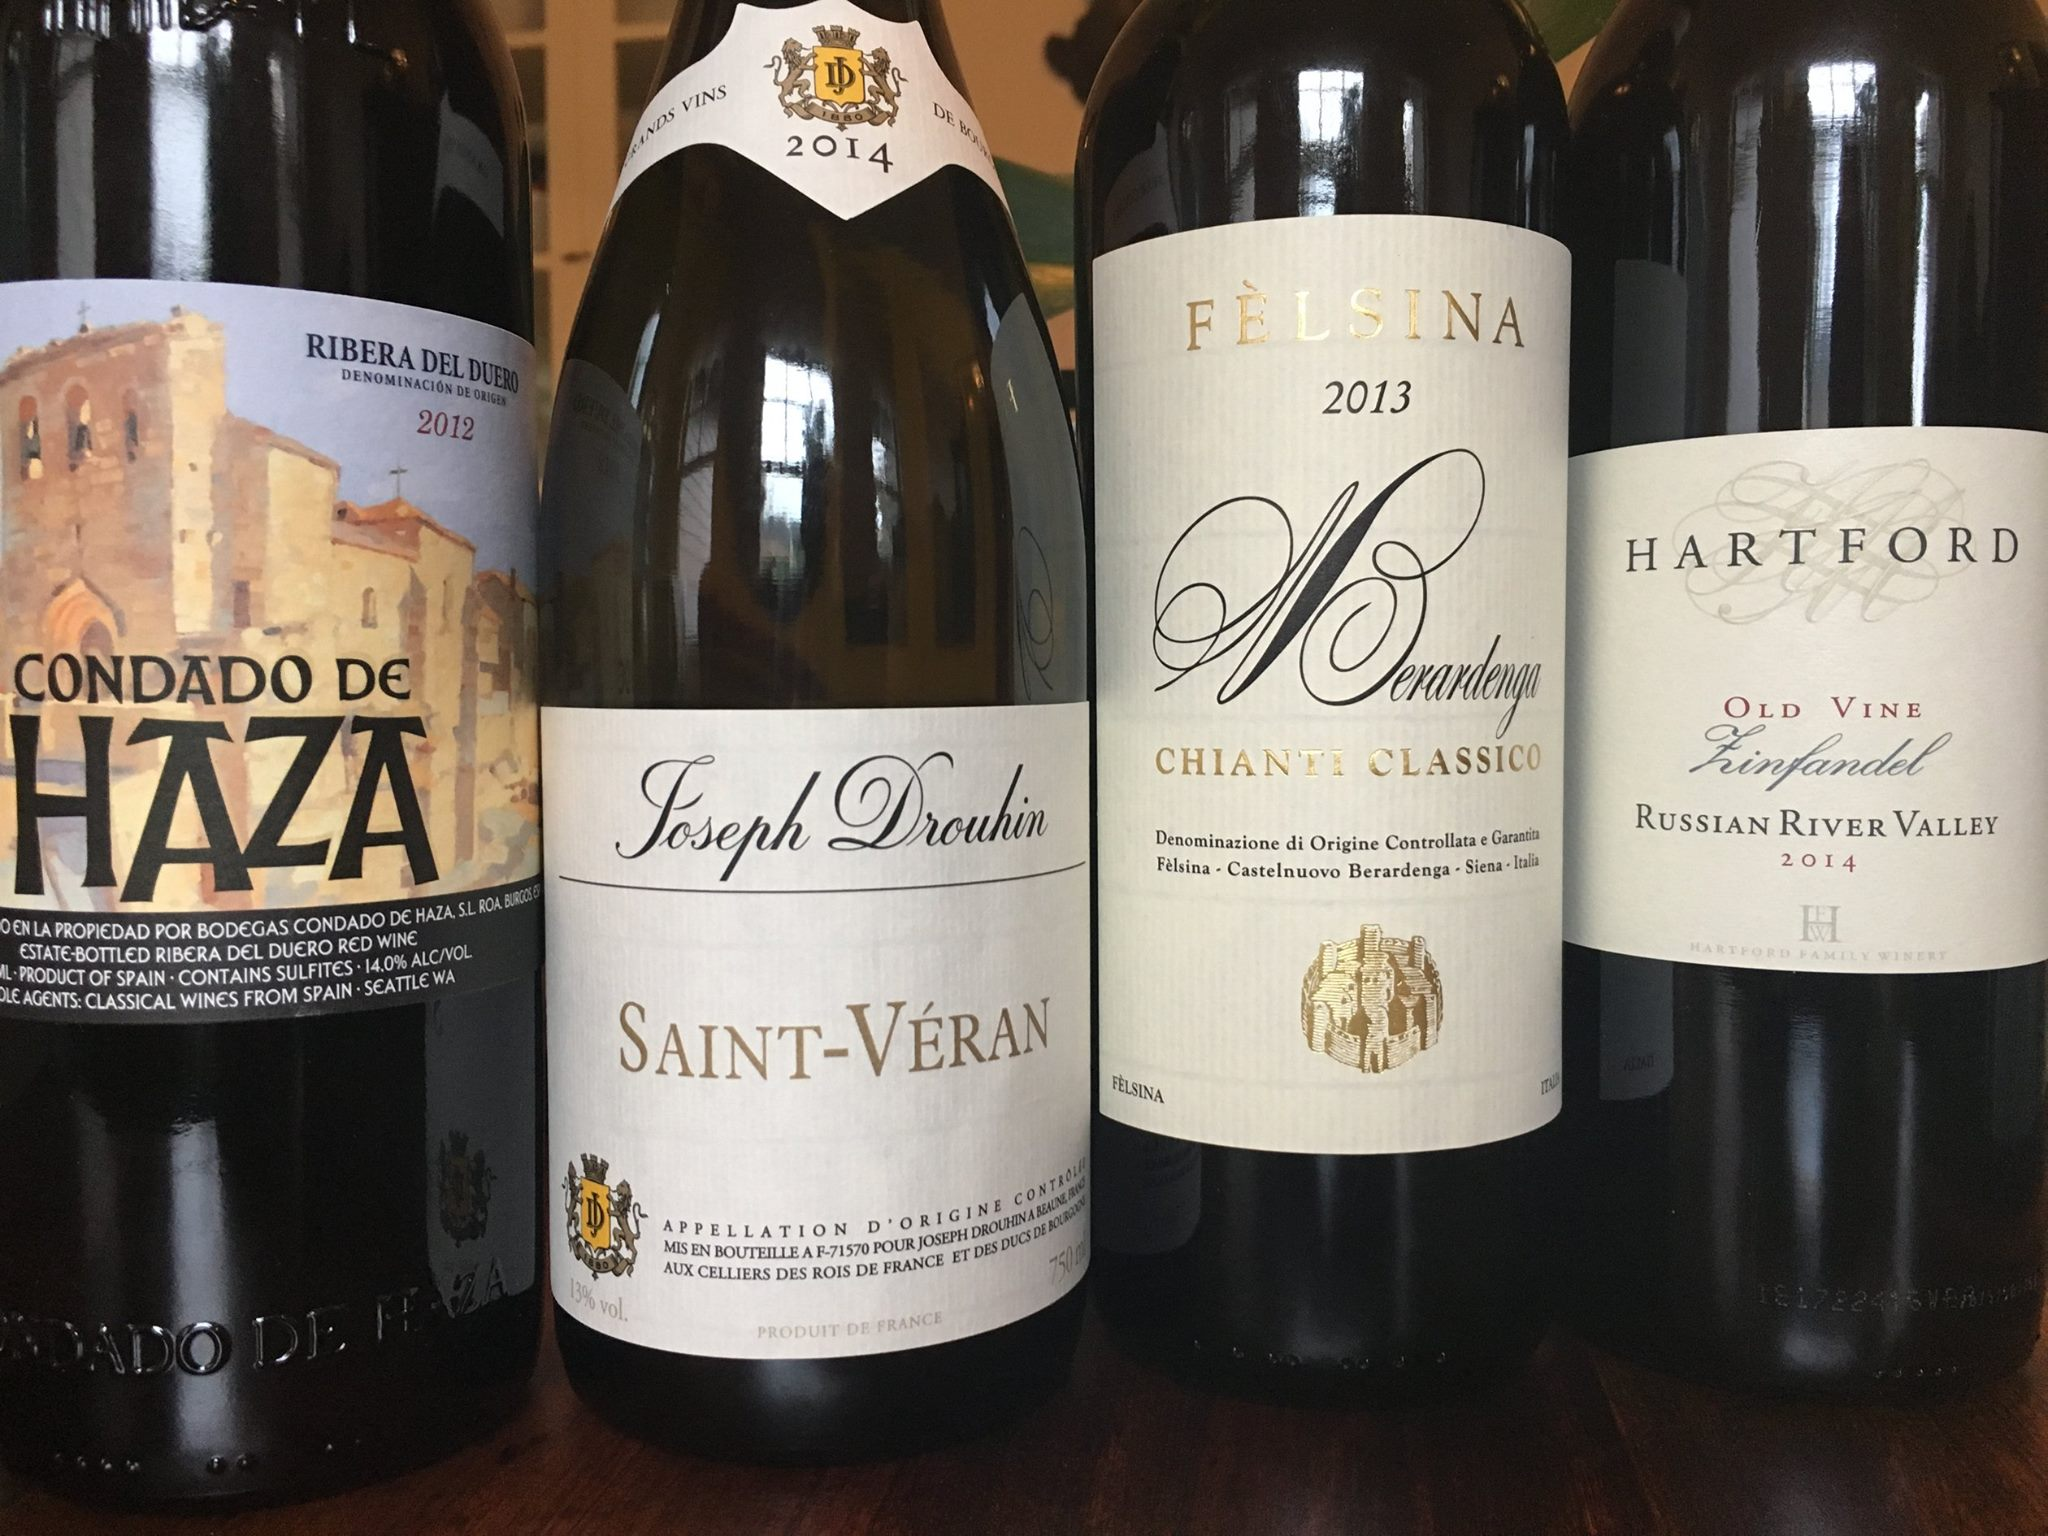 What do these four wines have in common?